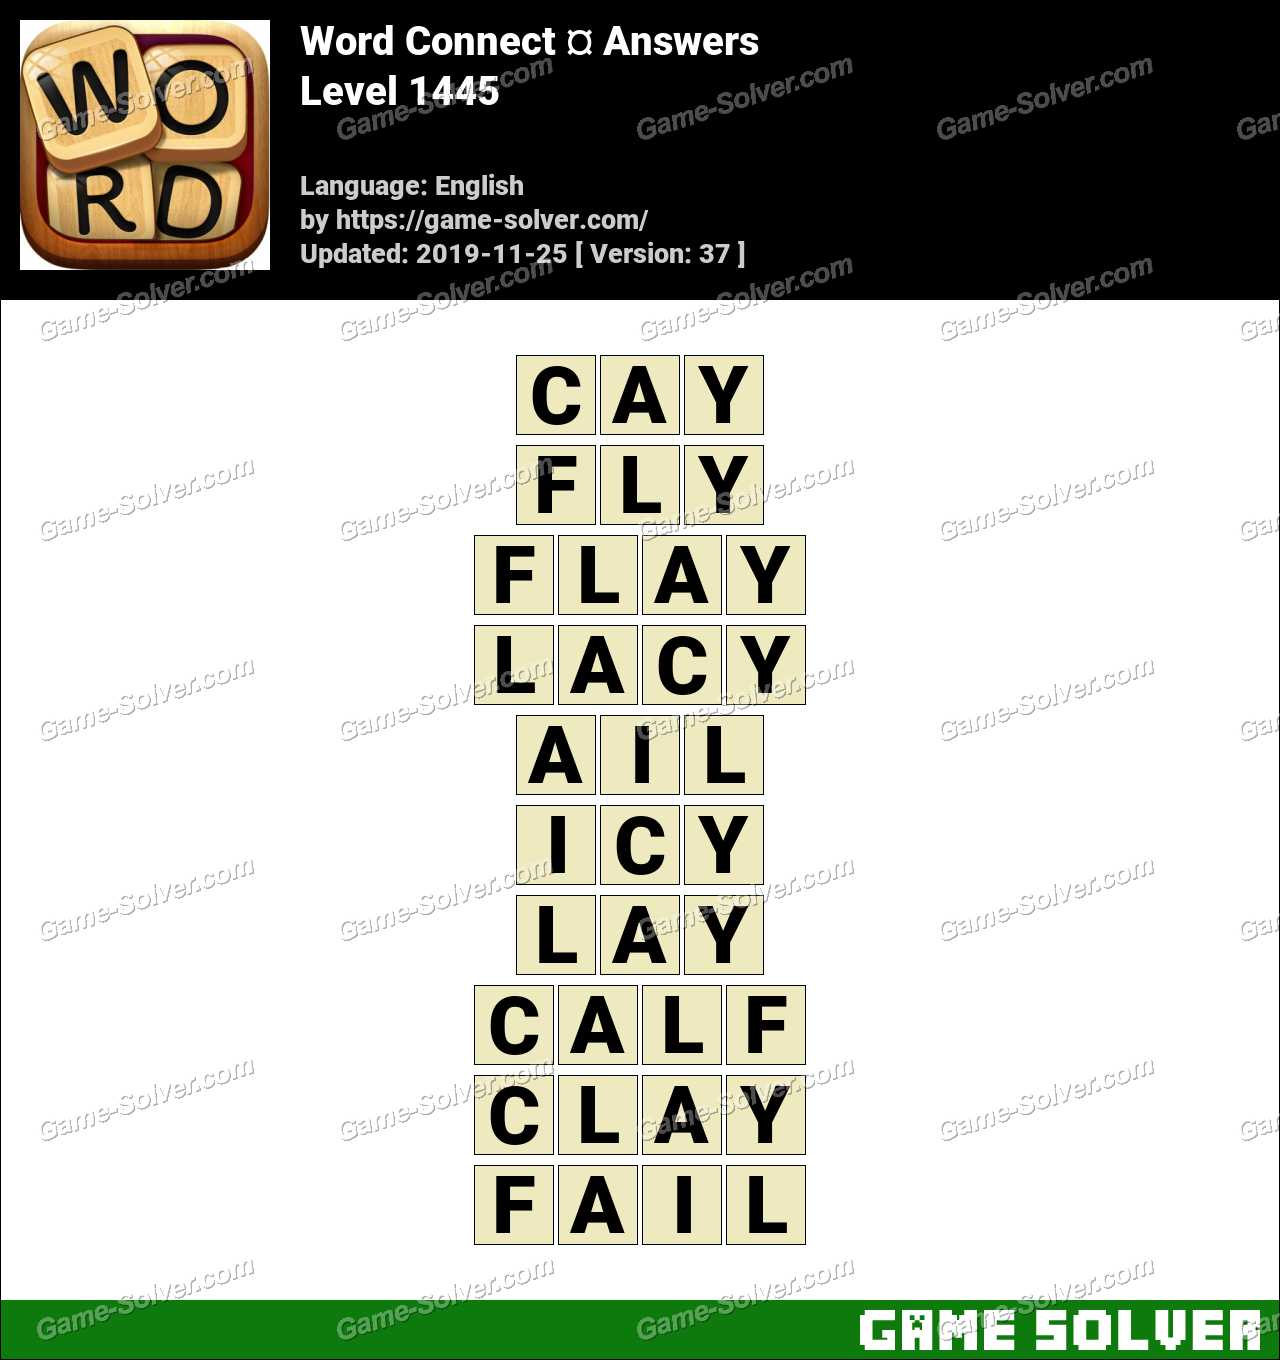 Word Connect Level 1445 Answers